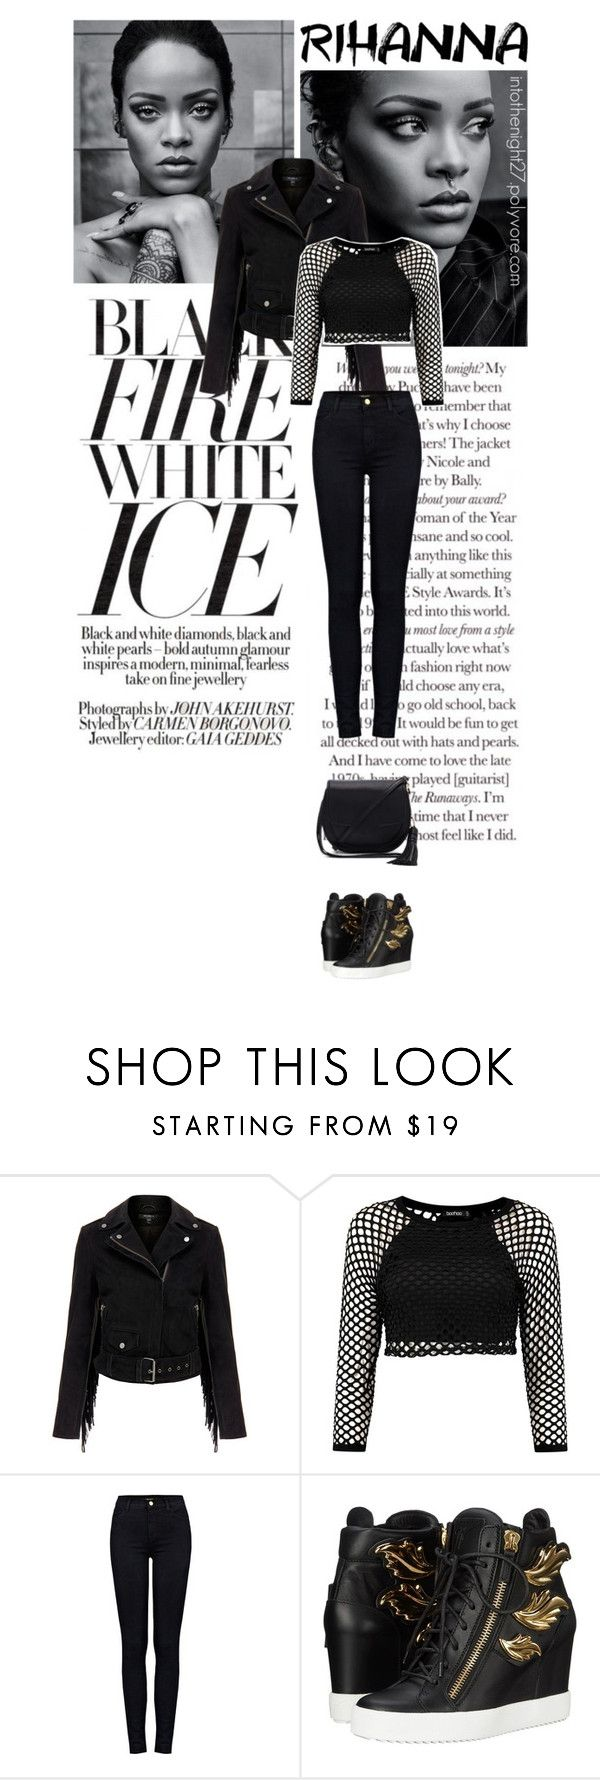 """#241 - Hot Ticket: Rihanna Concert"" by intothenight27 ❤ liked on Polyvore featuring MuuBaa, J Brand, Giuseppe Zanotti and Rebecca Minkoff"